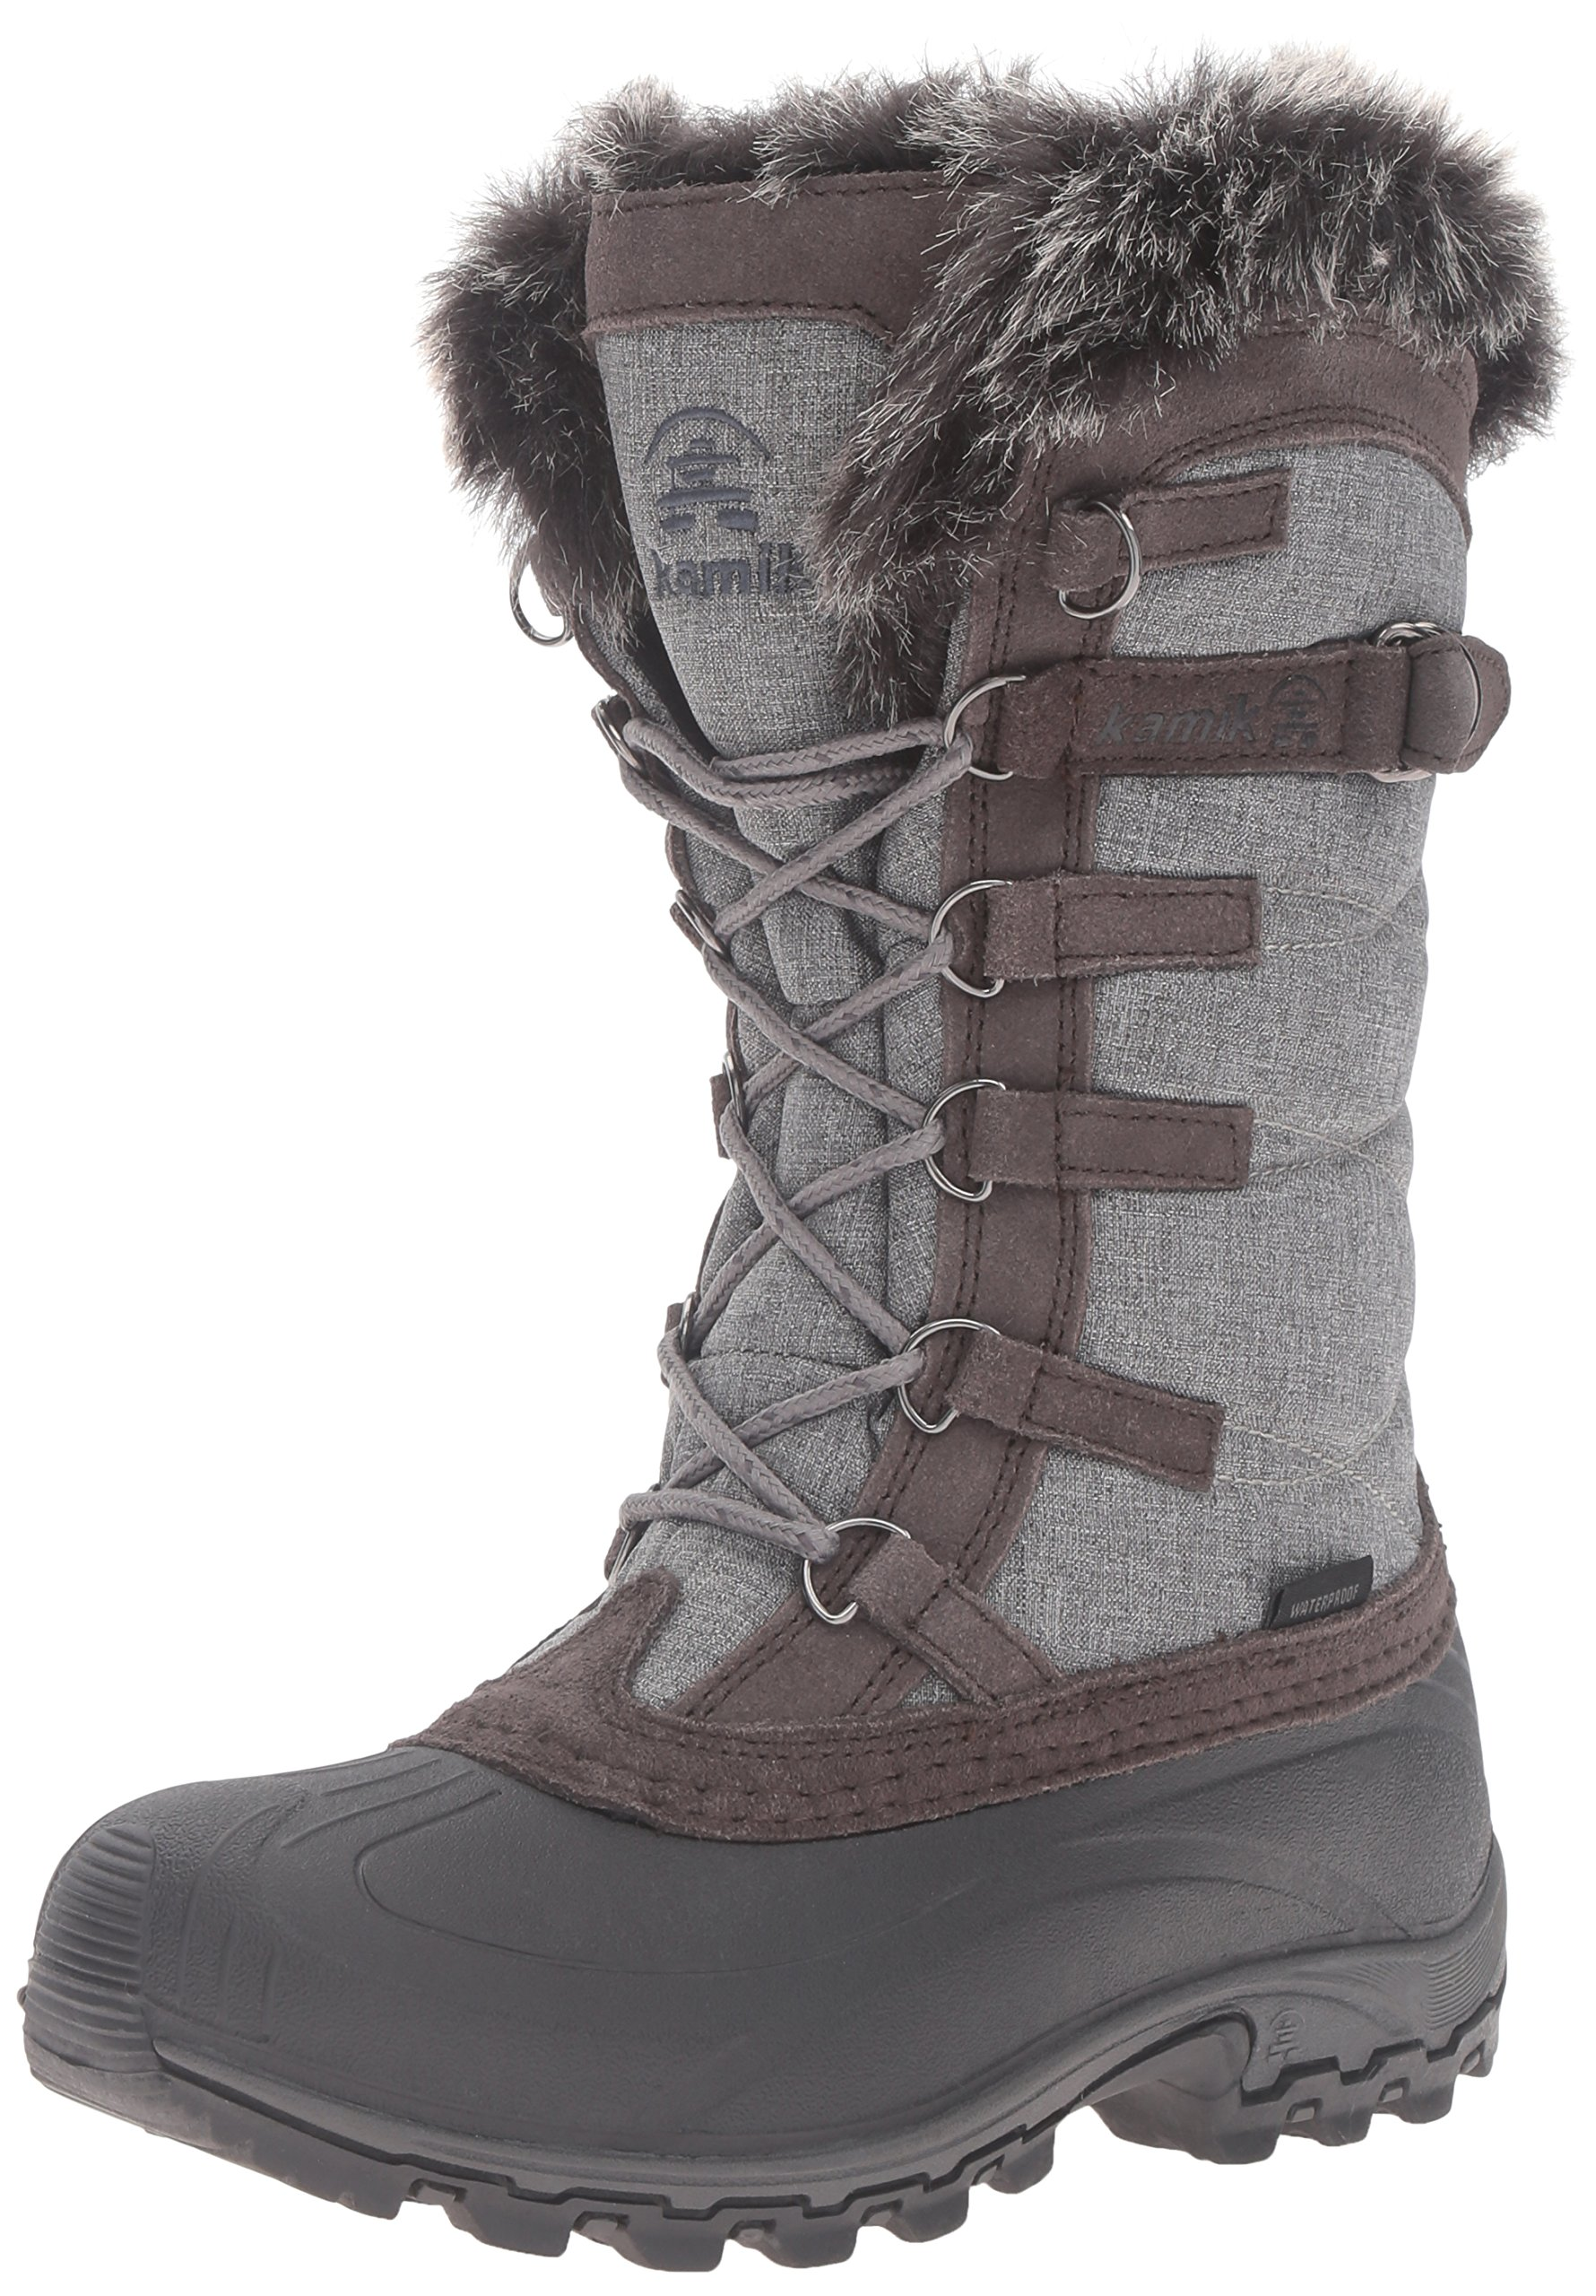 Kamik Women's Snowvalley Snow Boot, Charcoal/Brown, 10 M US